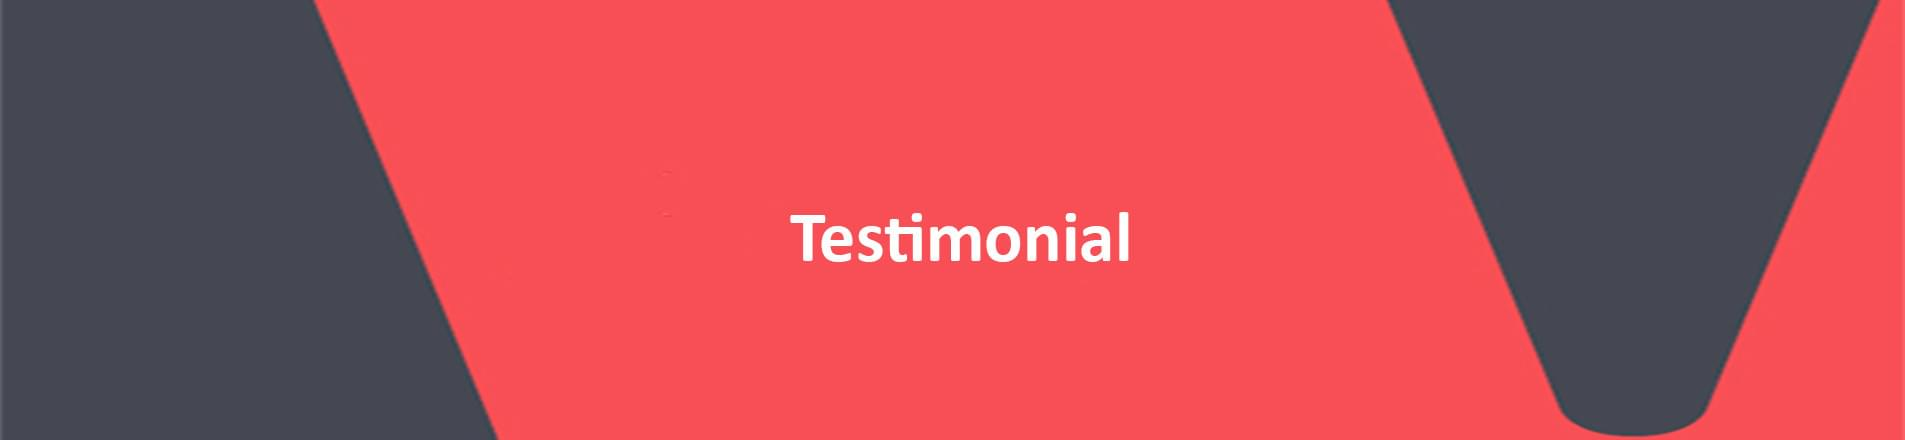 Image of the word testimonial in white font on a red background